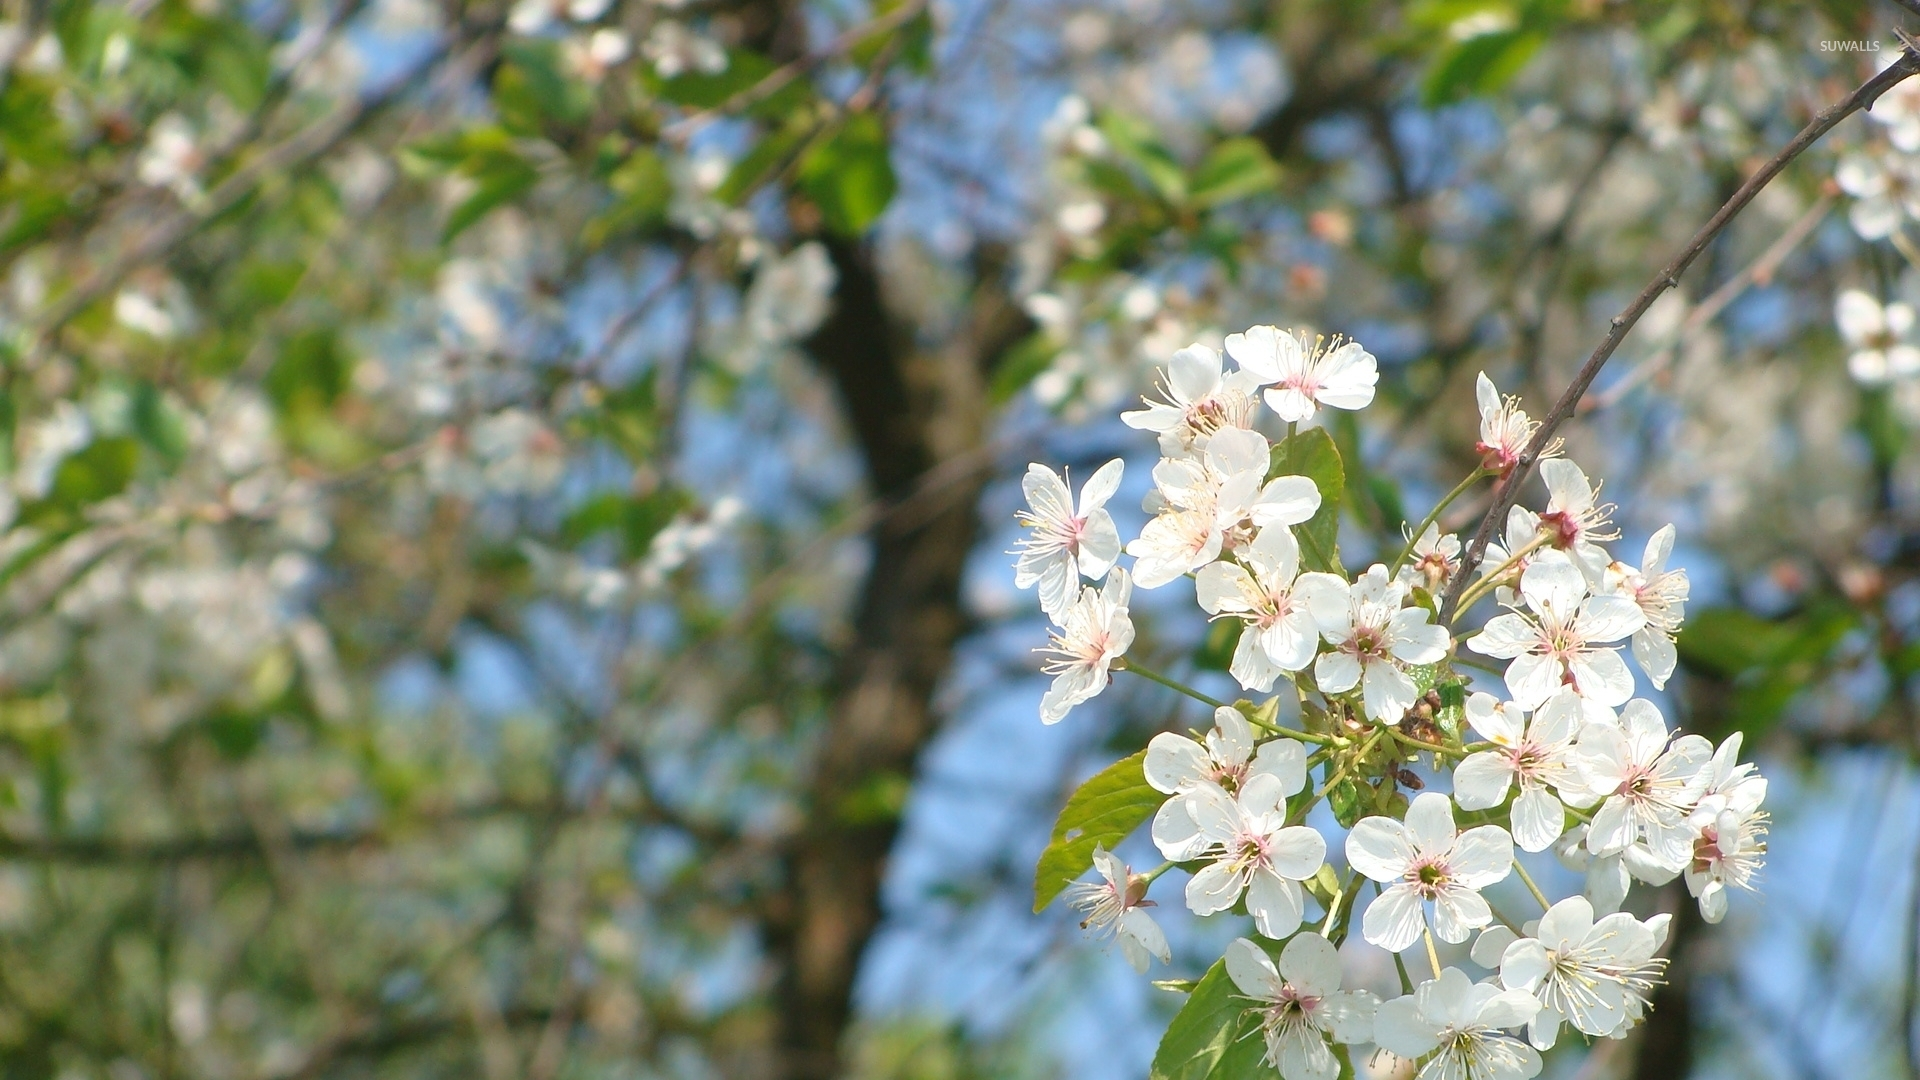 White spring blossoms on a sunny day wallpaper   Flower wallpapers 1920x1080